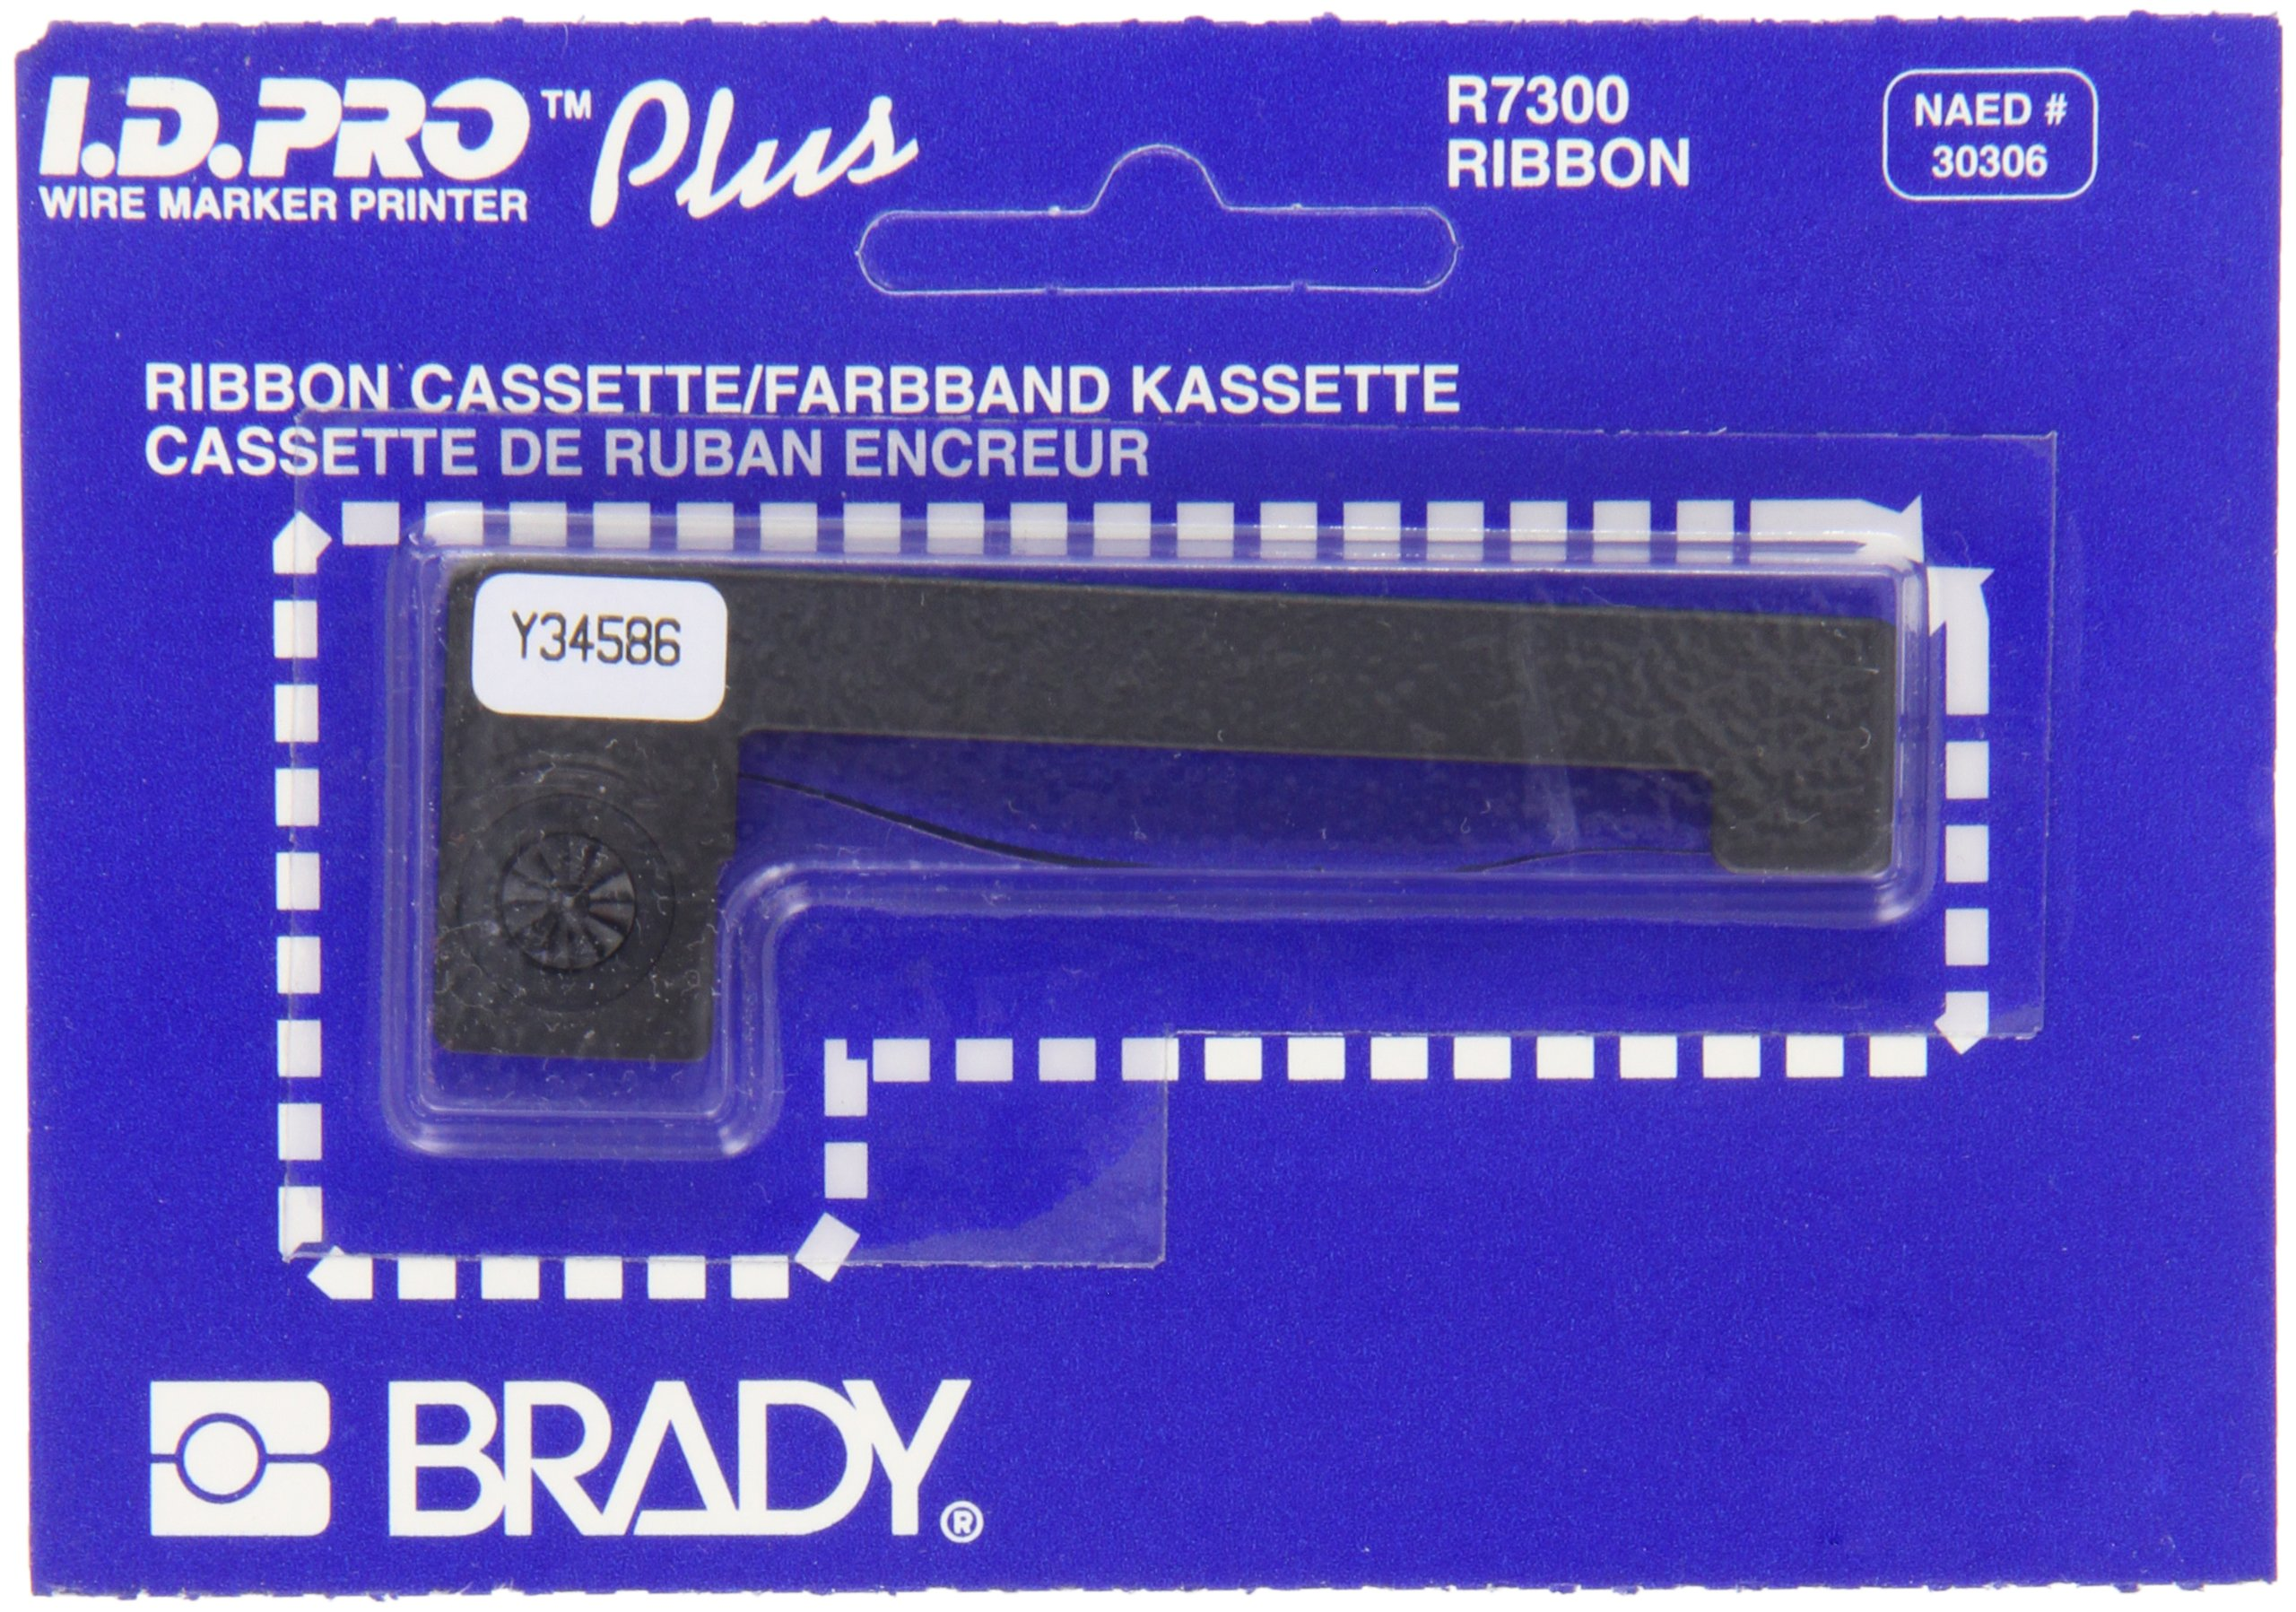 Brady R7300 7000 Series I.D.Pro Black Color, Plus Printer Ribbon by Brady